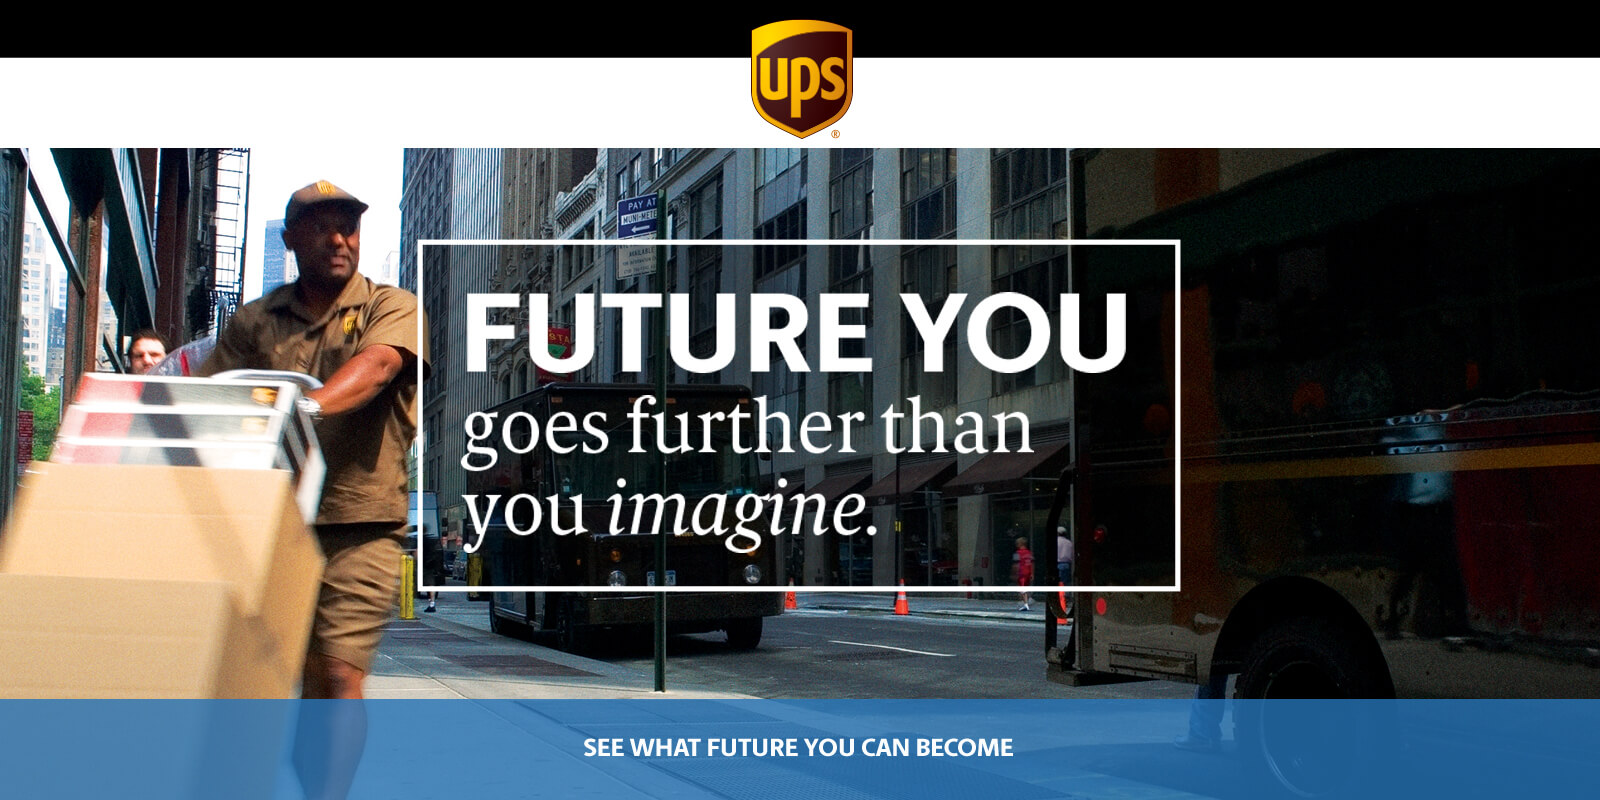 Full-time Dockworker with CDL at United Parcel Service (UPS)